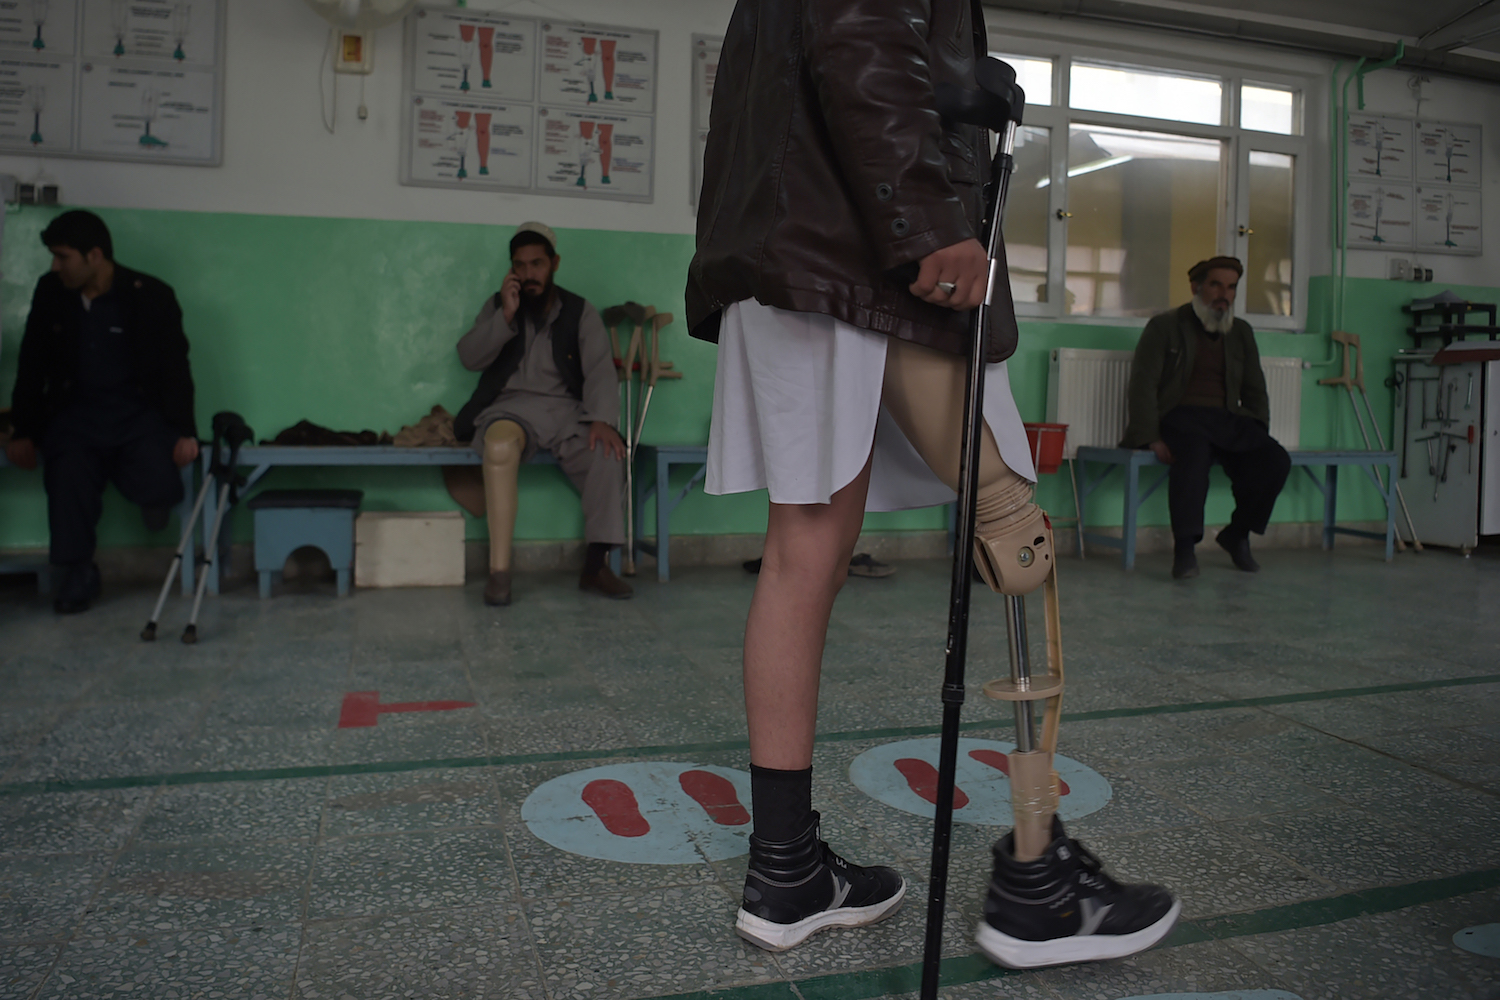 TOPSHOT - In this photograph taken on February 13, 2018 shows an Afghan amputee walking with his prosthetic leg at a hospital run by the International Committee of the Red Cross (ICRC) for war victims and the disabled in Kabul. More civilians were killed in suicide bombings and complex attacks in Afghanistan in 2017 than any previous year of the conflict, a UN report said on February 15, as militants ramp up assaults on cities. / AFP PHOTO / SHAH MARAI        (Photo credit should read SHAH MARAI/AFP/Getty Images)